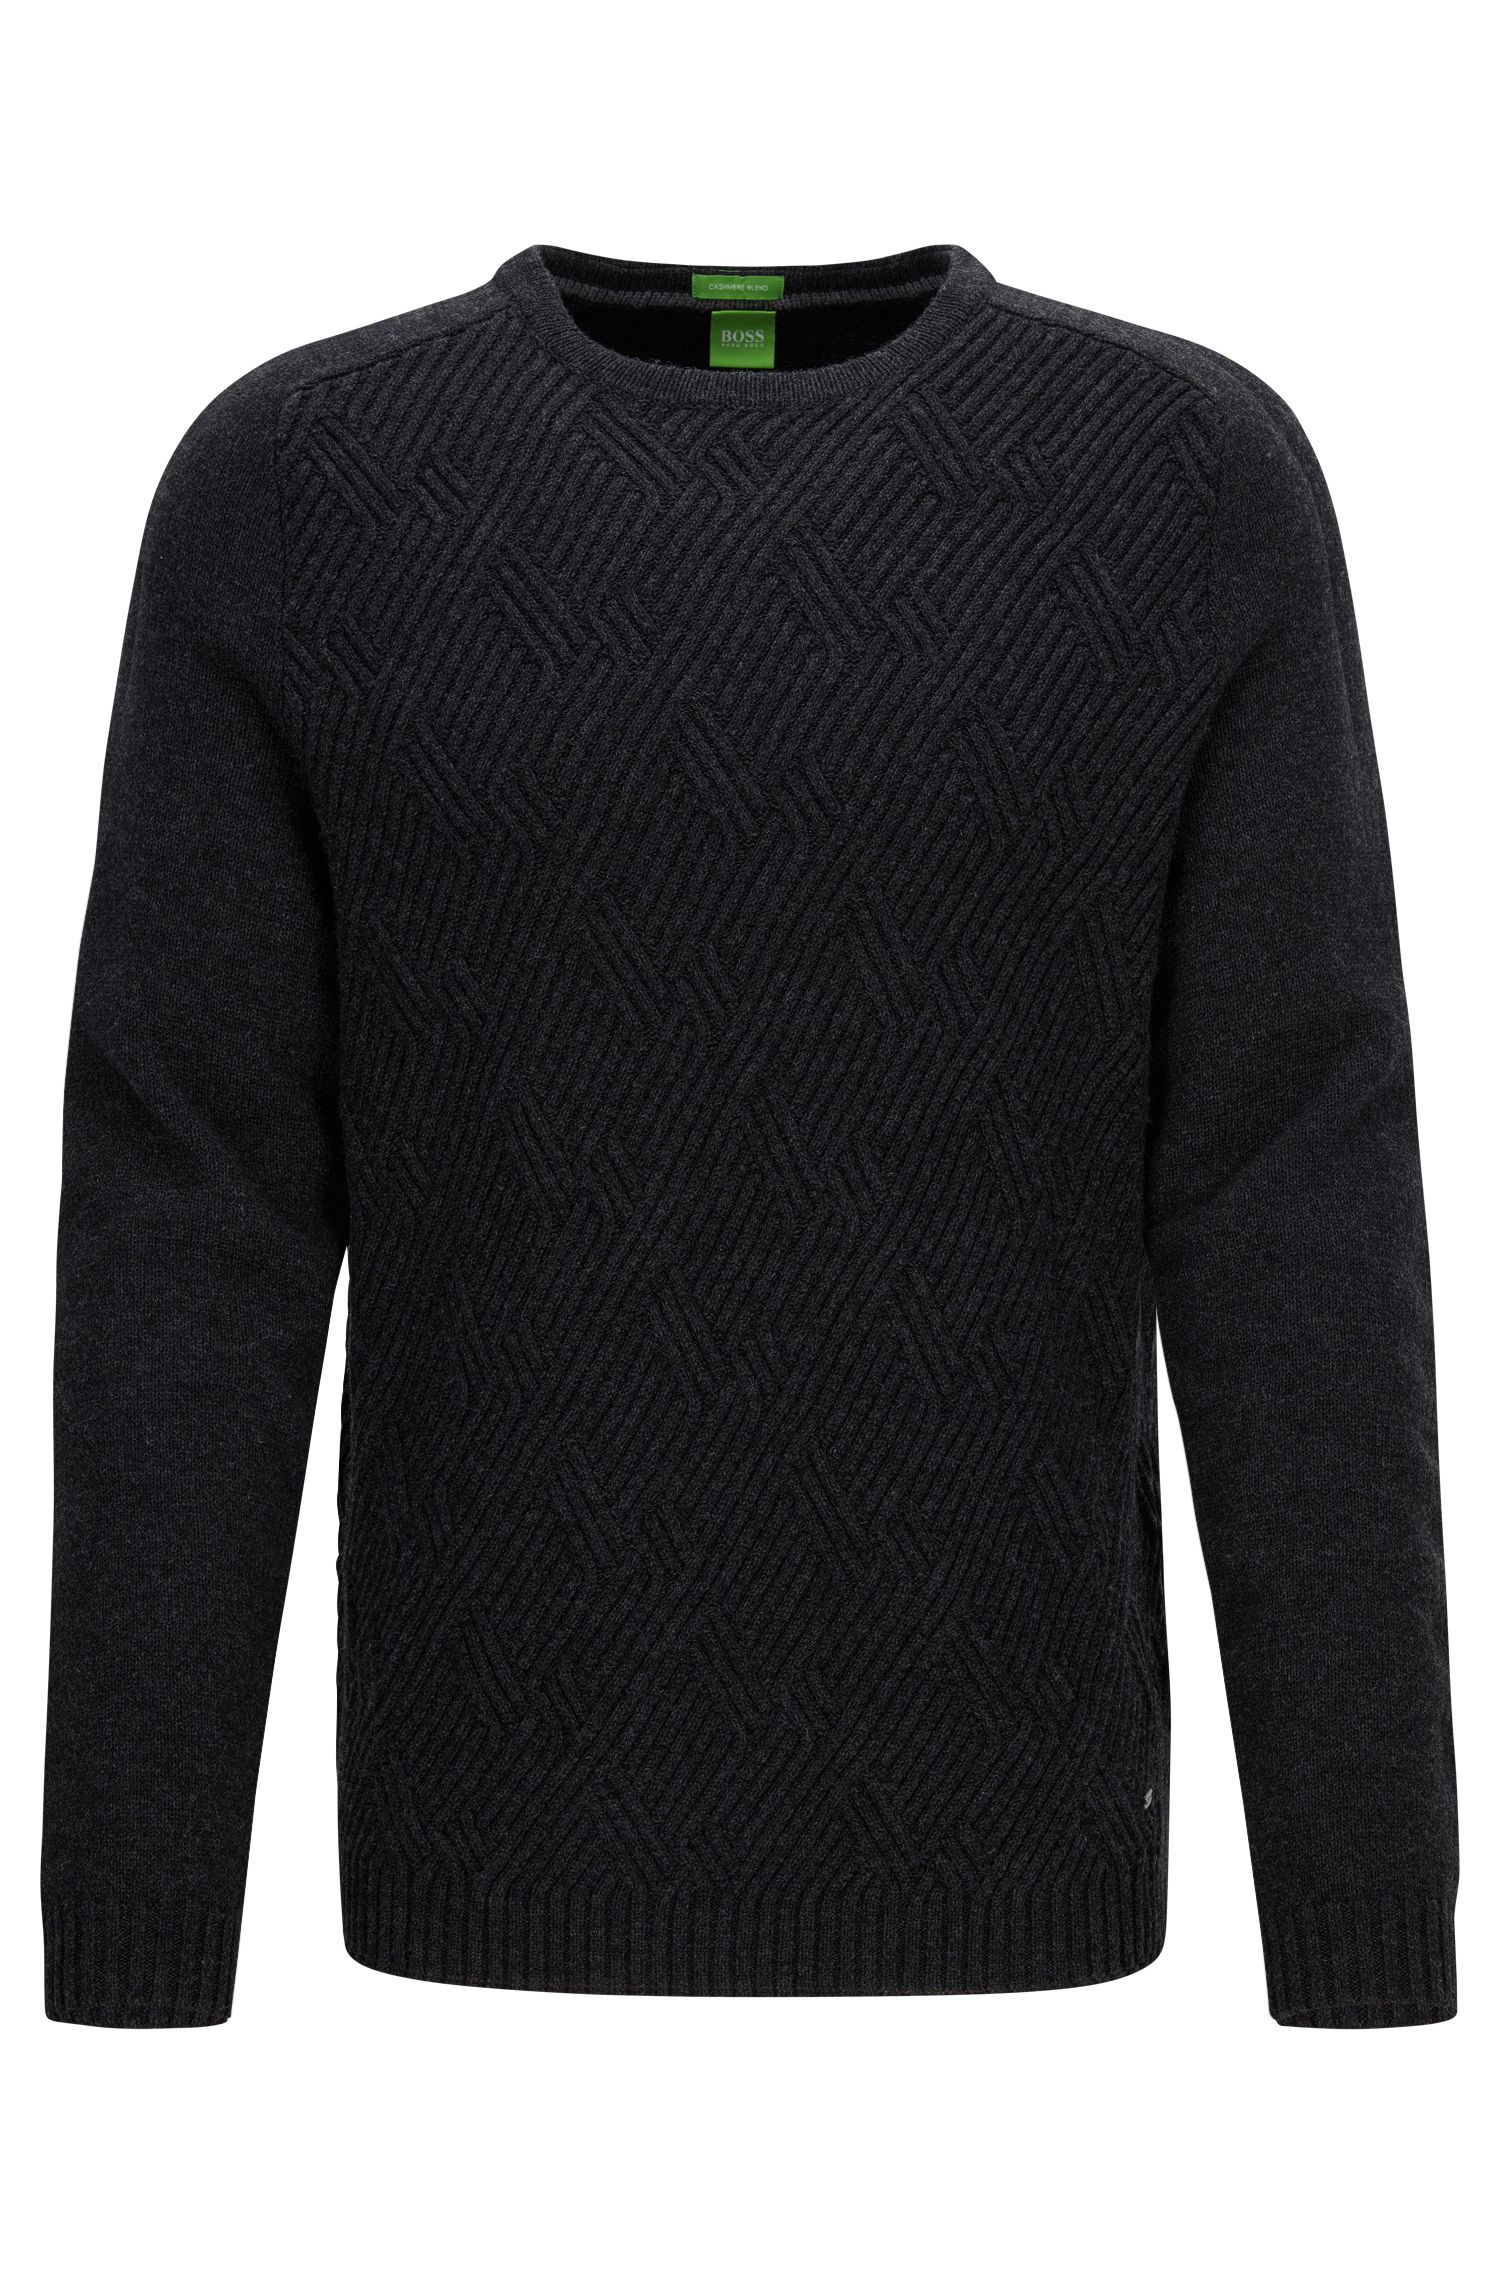 Crew-neck sweater with cable structure